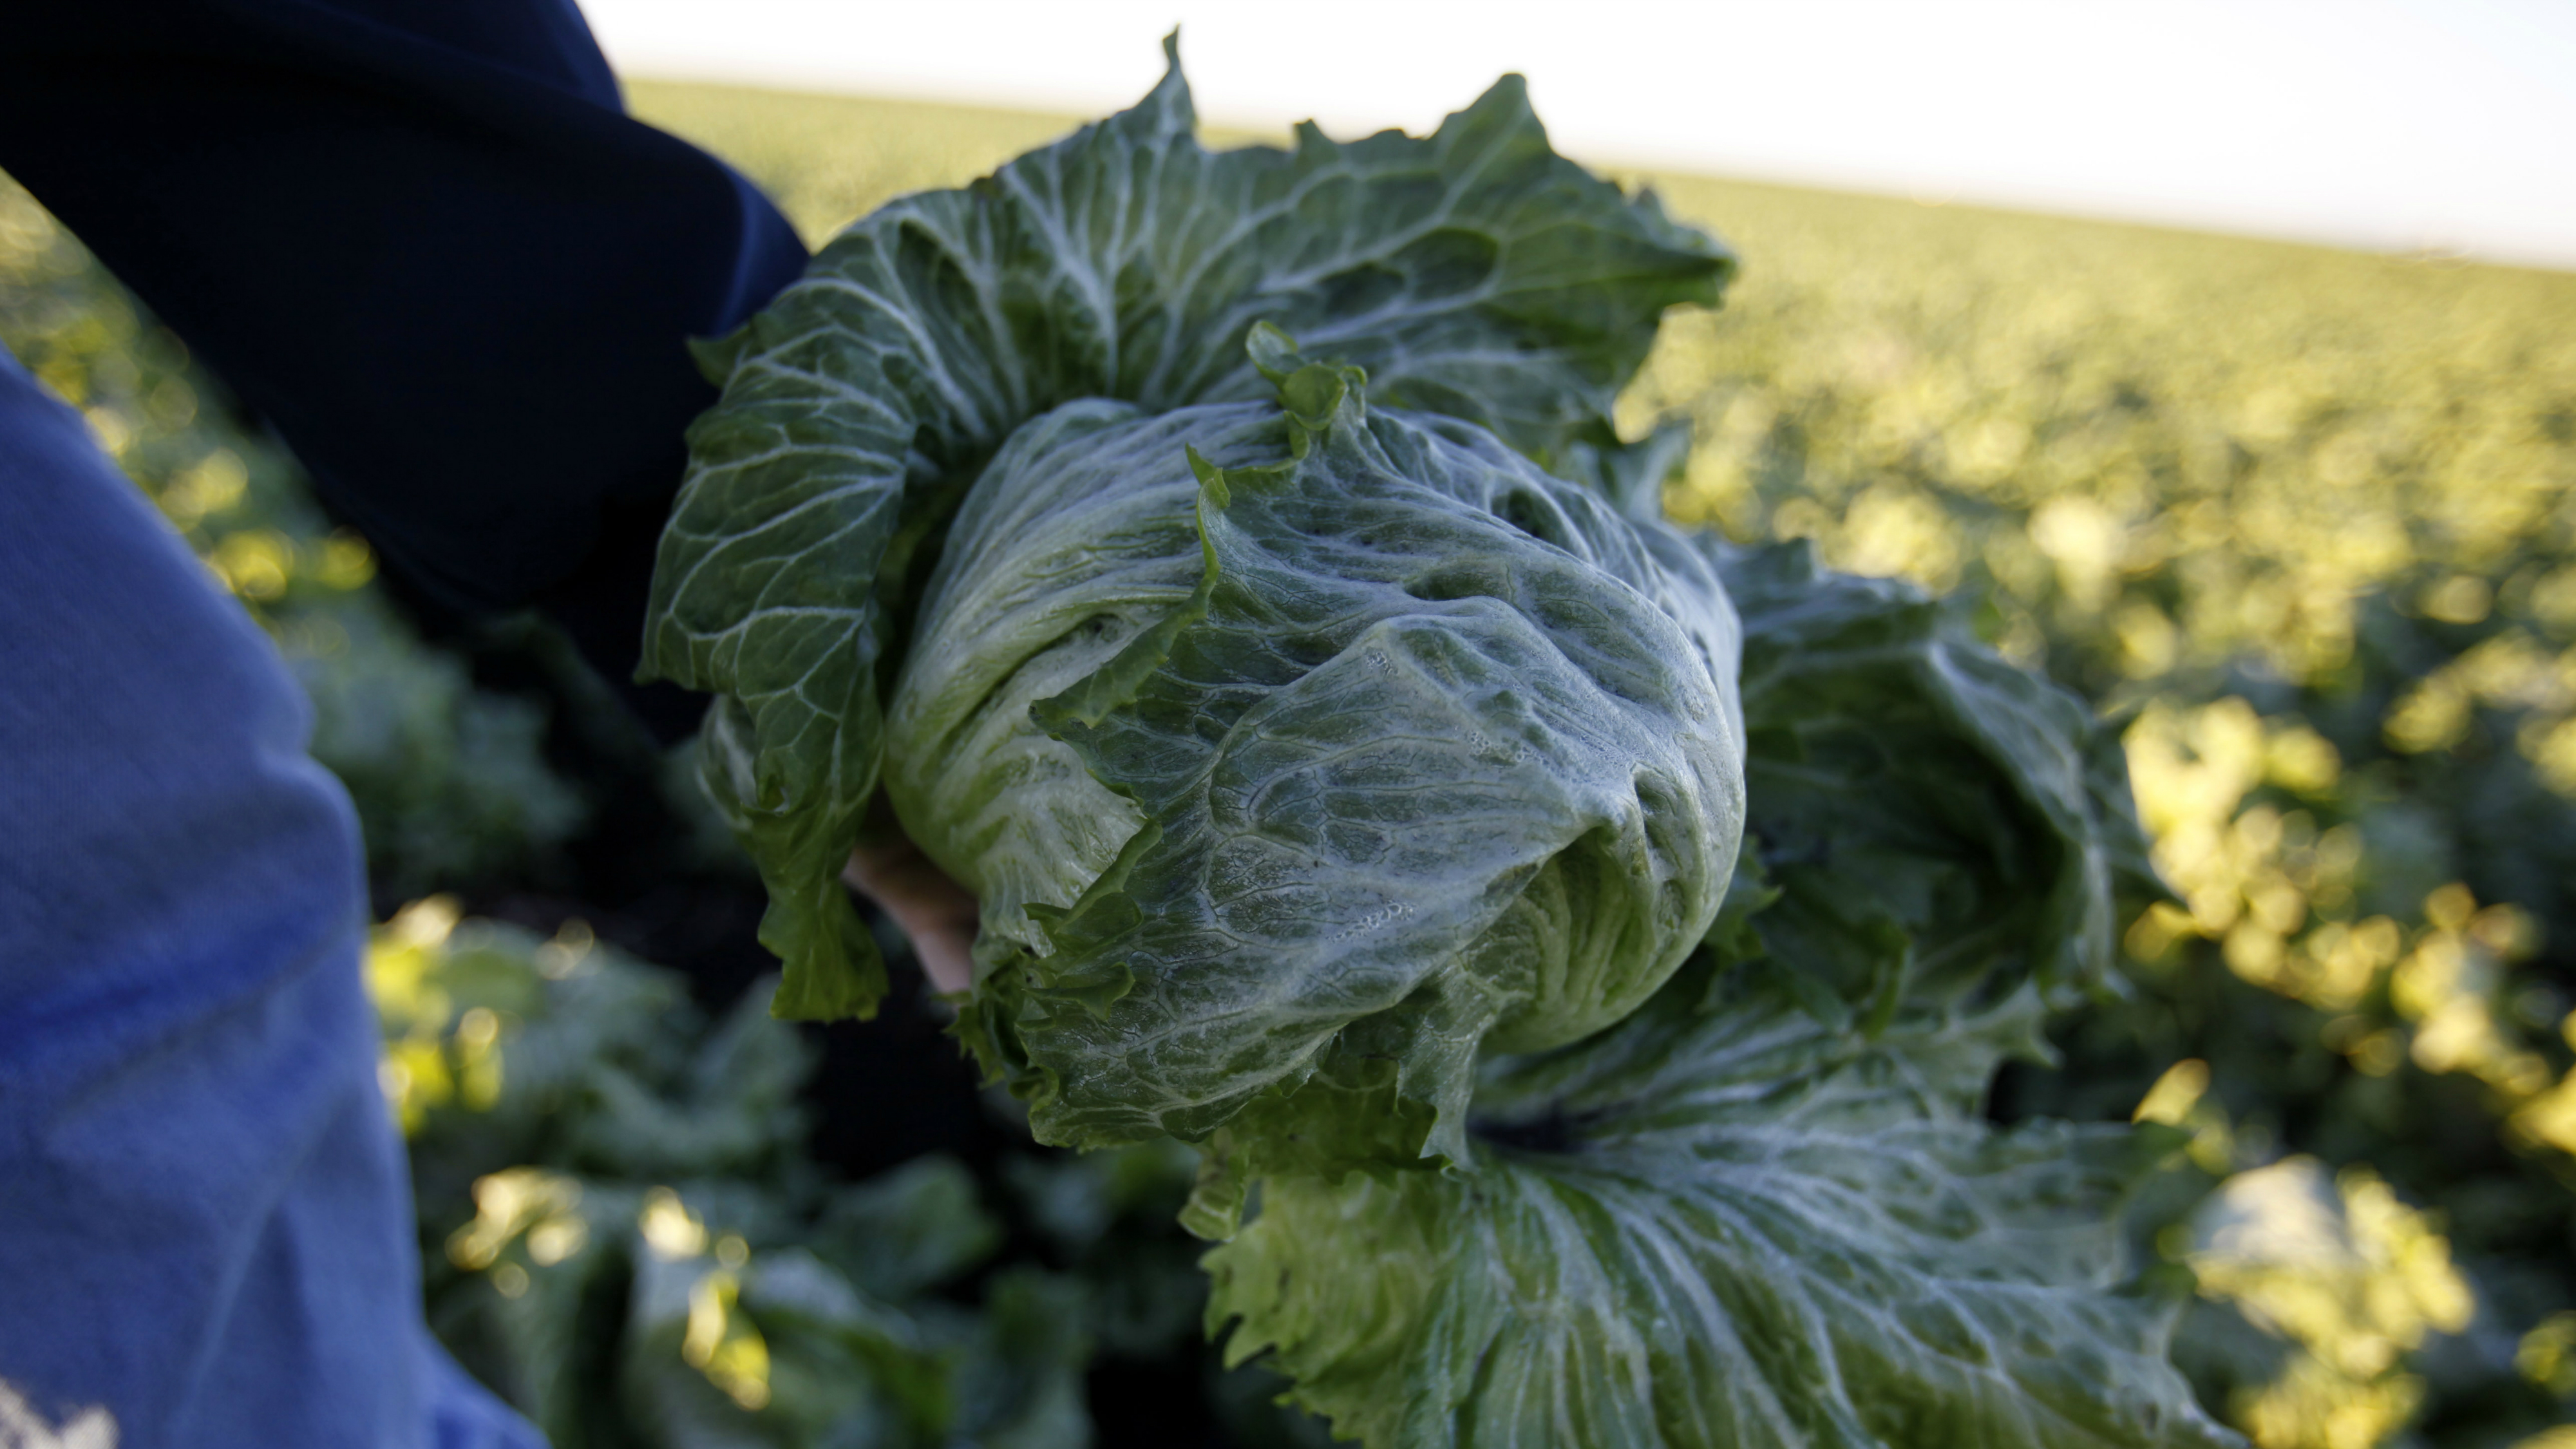 35 reported cases of E. coli linked to romaine lettuce: CDC